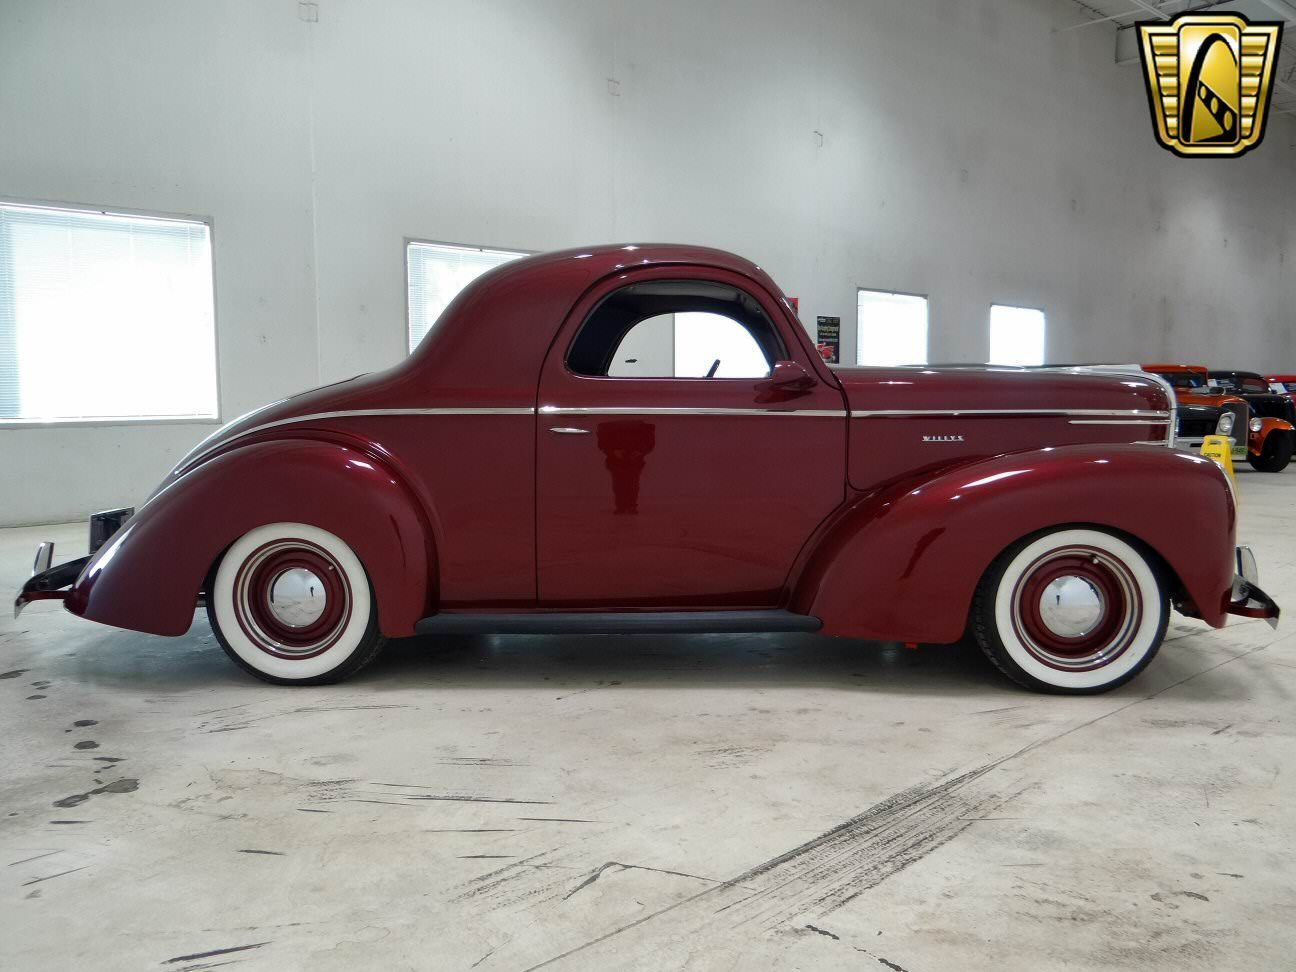 Willys cars 1941 willys coupe